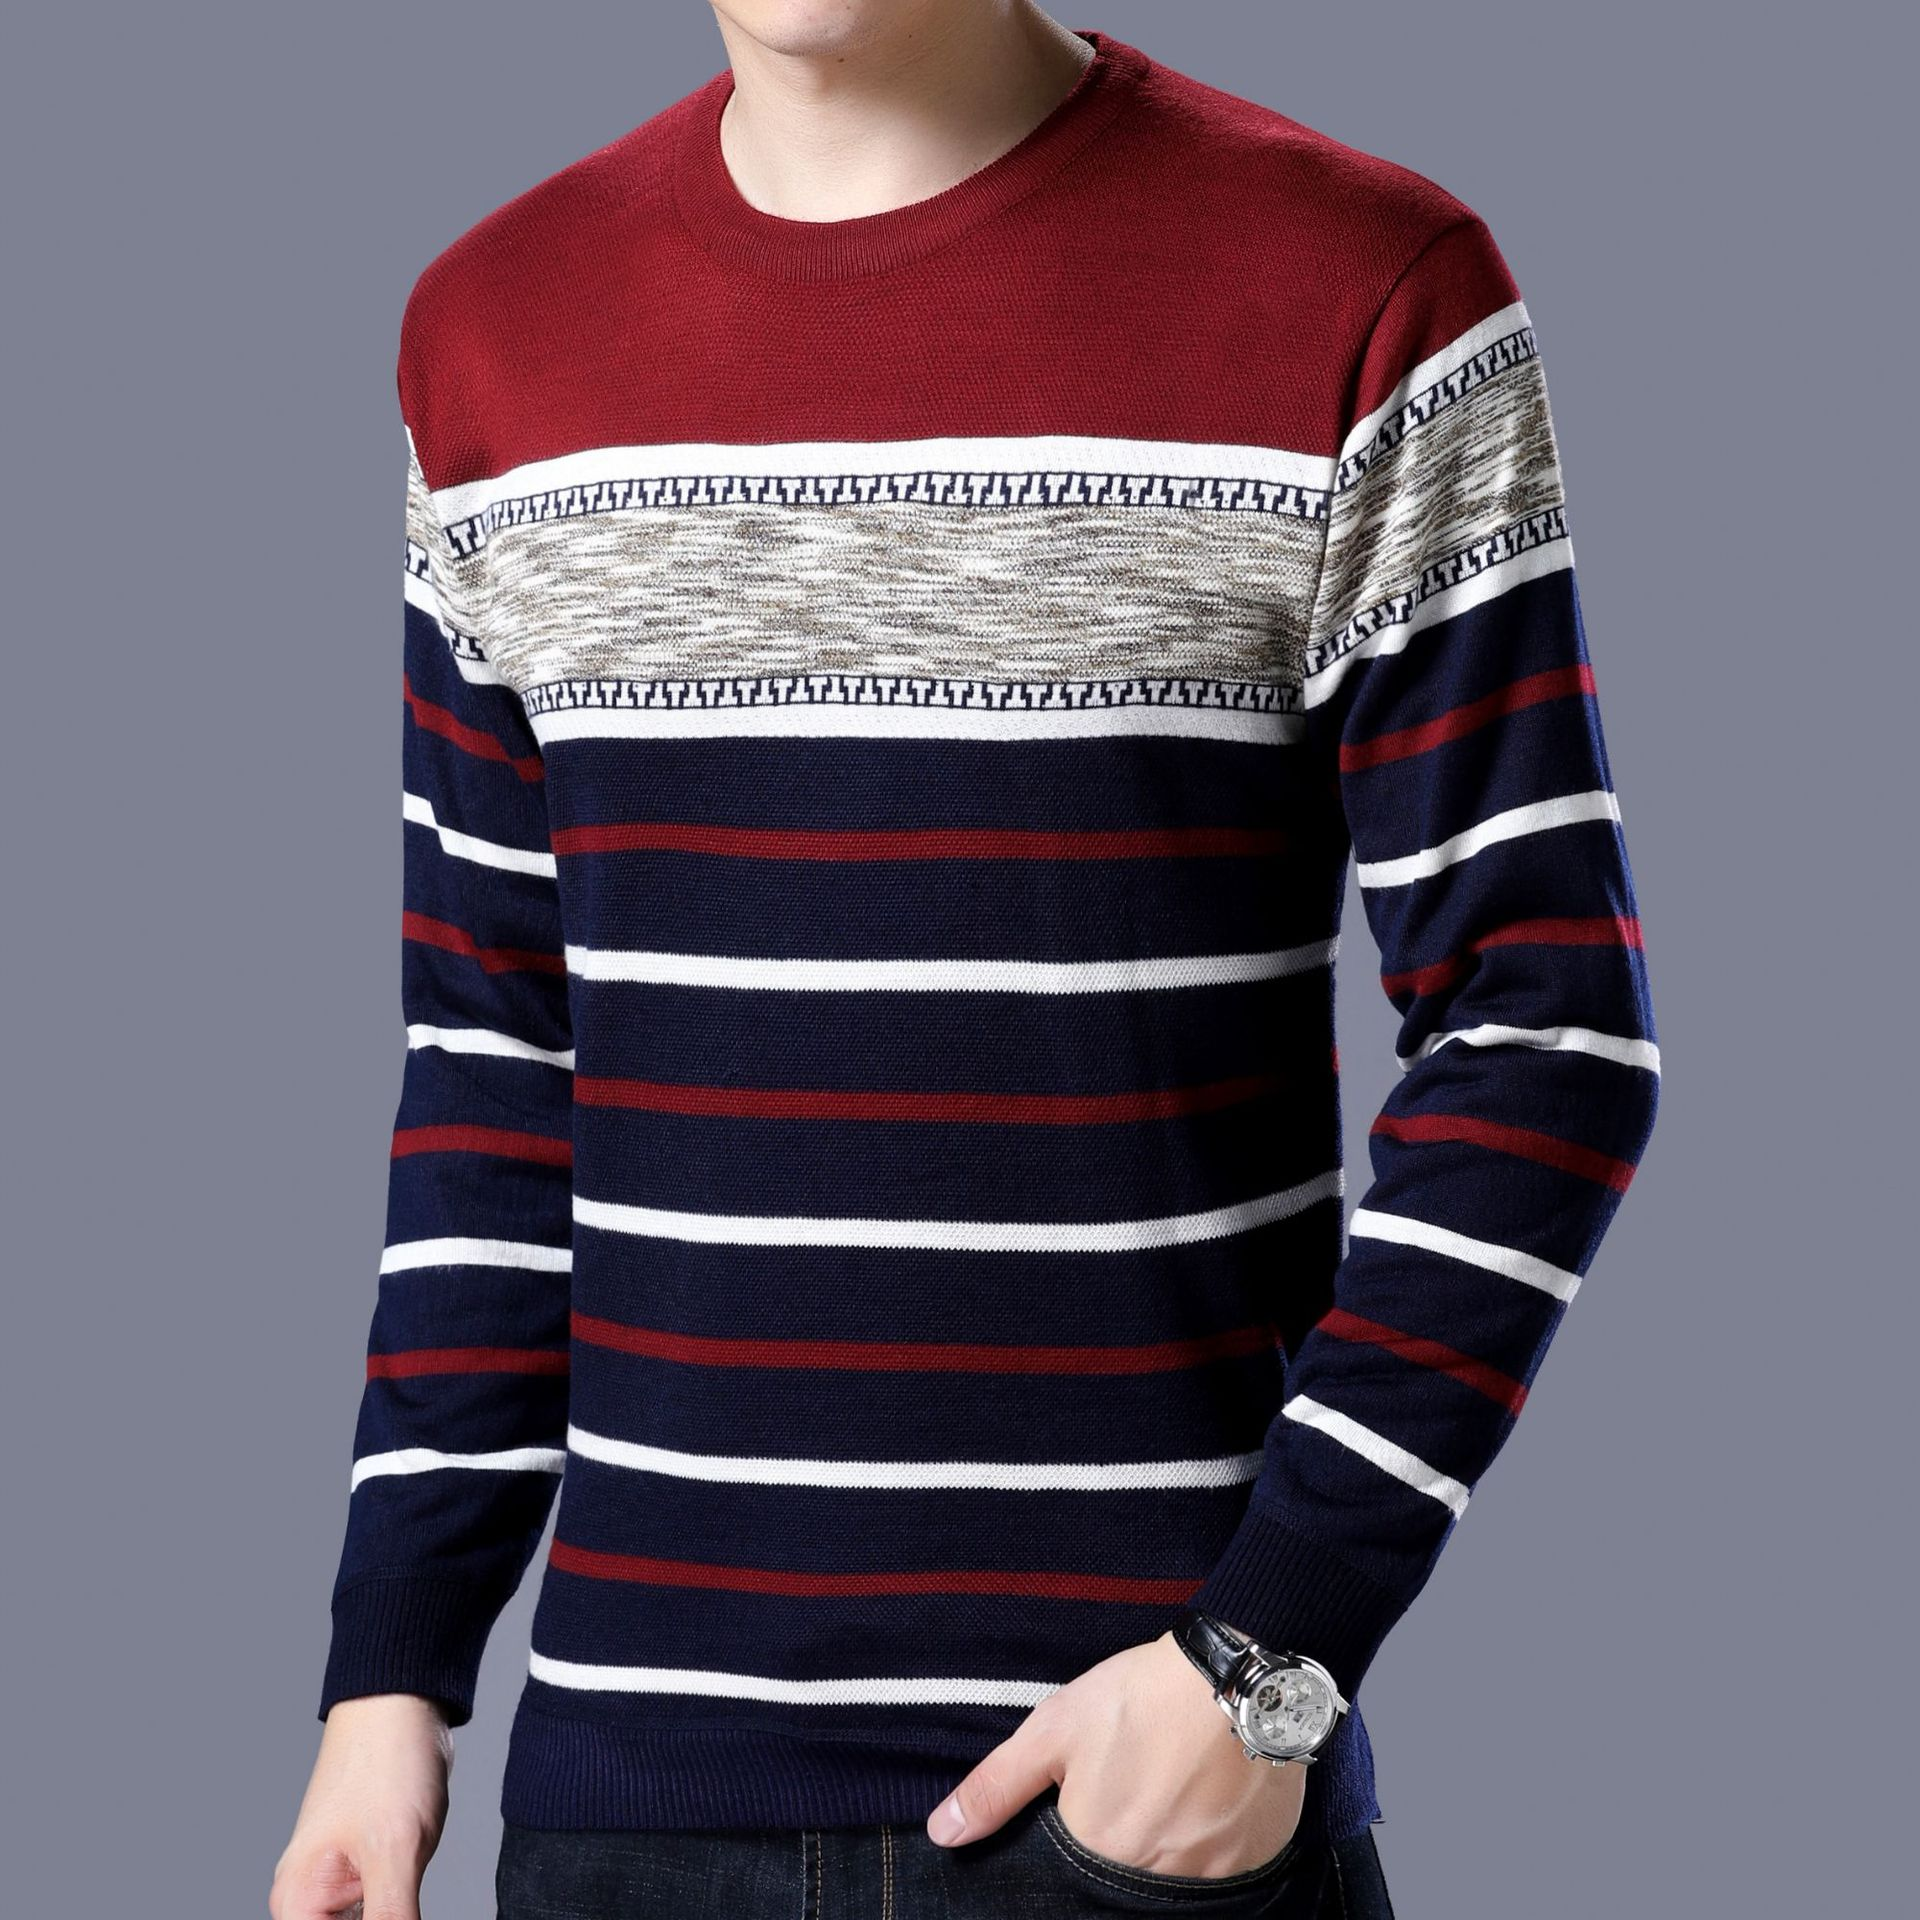 Spring Autumn Fashion Striped Knit Sweater Fleece Thick Men's Warm T-shirts Burgundy Long Sleeve Slim Pullover Casual Clothing